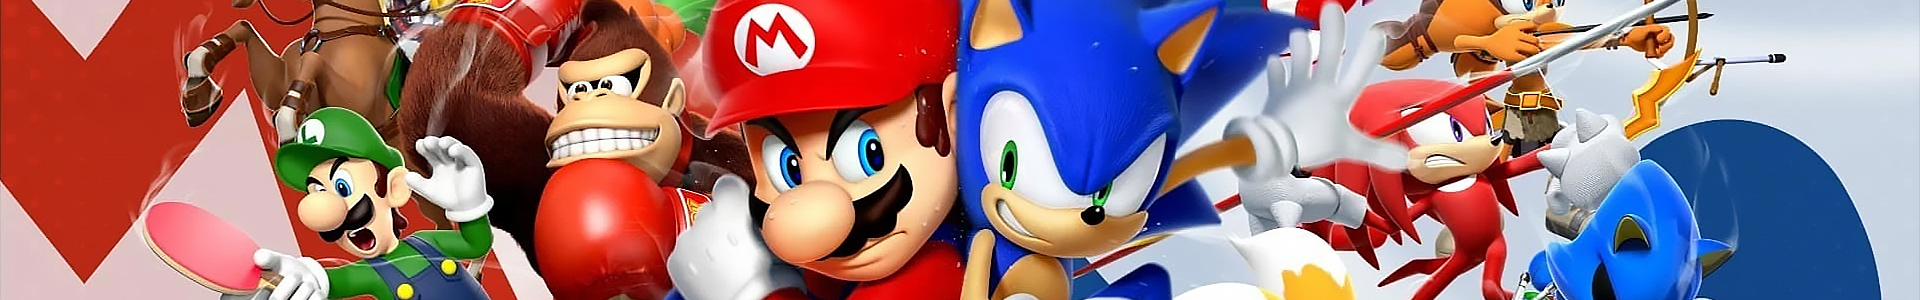 Banner media of Mario and Sonic at the Olympic Games: Tokyo 2020 video game.